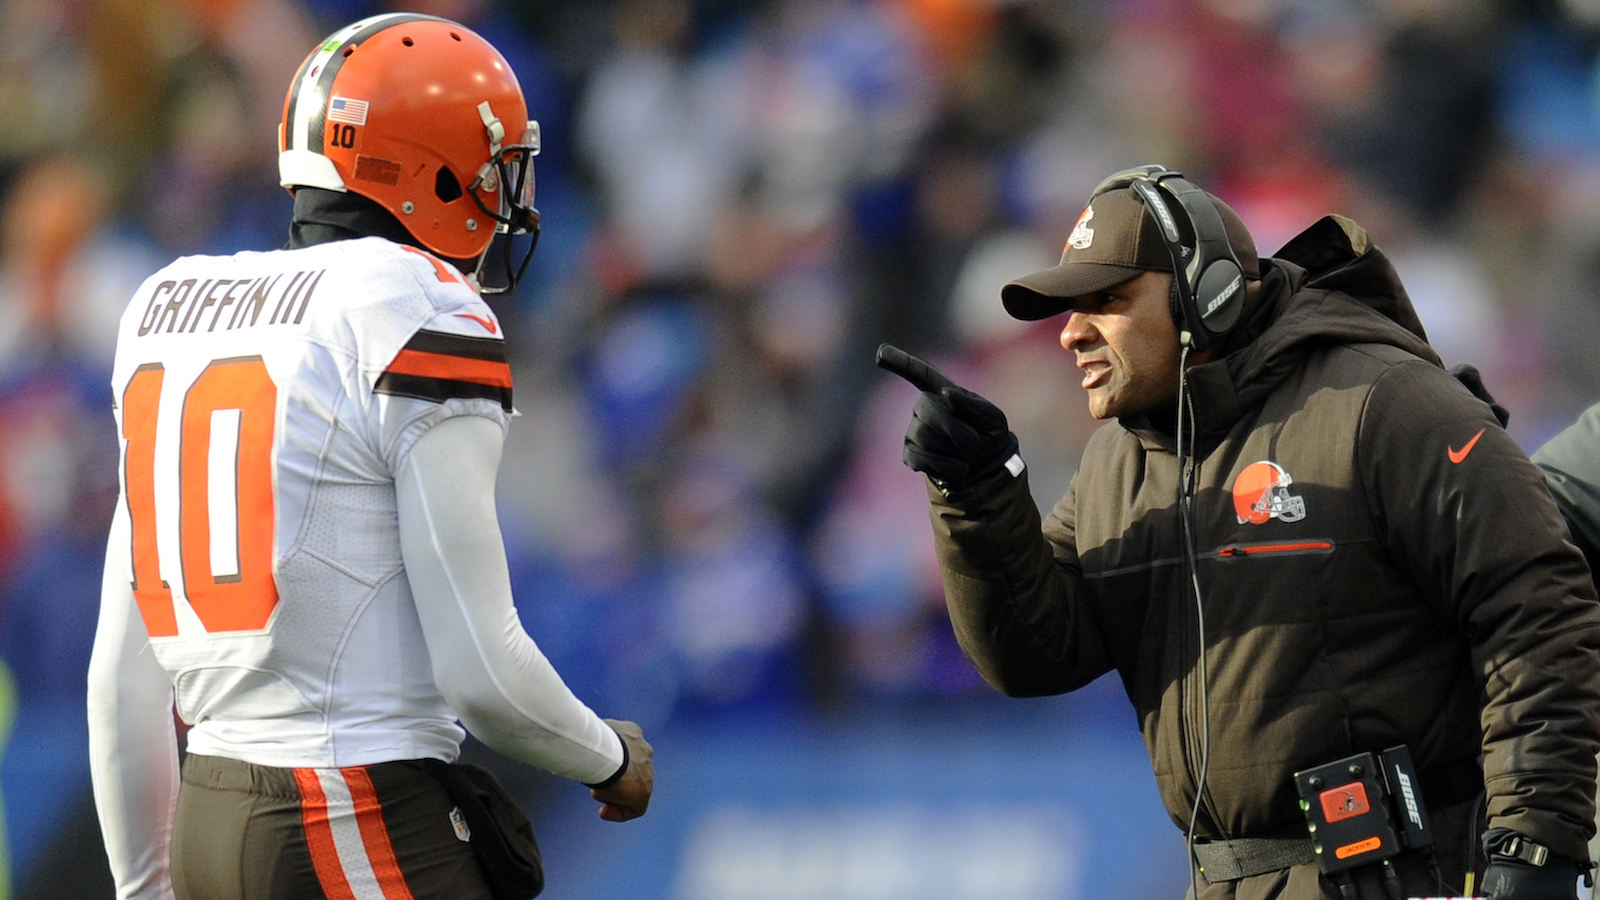 ORCHARD PARK, NY - DECEMBER 18, 2016: Quarterback Robert Griffin III #10 of the Cleveland Browns is greeted on the sideline by head coach Hue Jackson after scoring a rushing touchdown during a game against the Buffalo Bills on December 16, 2016 at New Era Field in Orchard Park, New York. Buffalo won 33-13. (Photo by: Nick Cammett/Diamond Images/Getty Images)